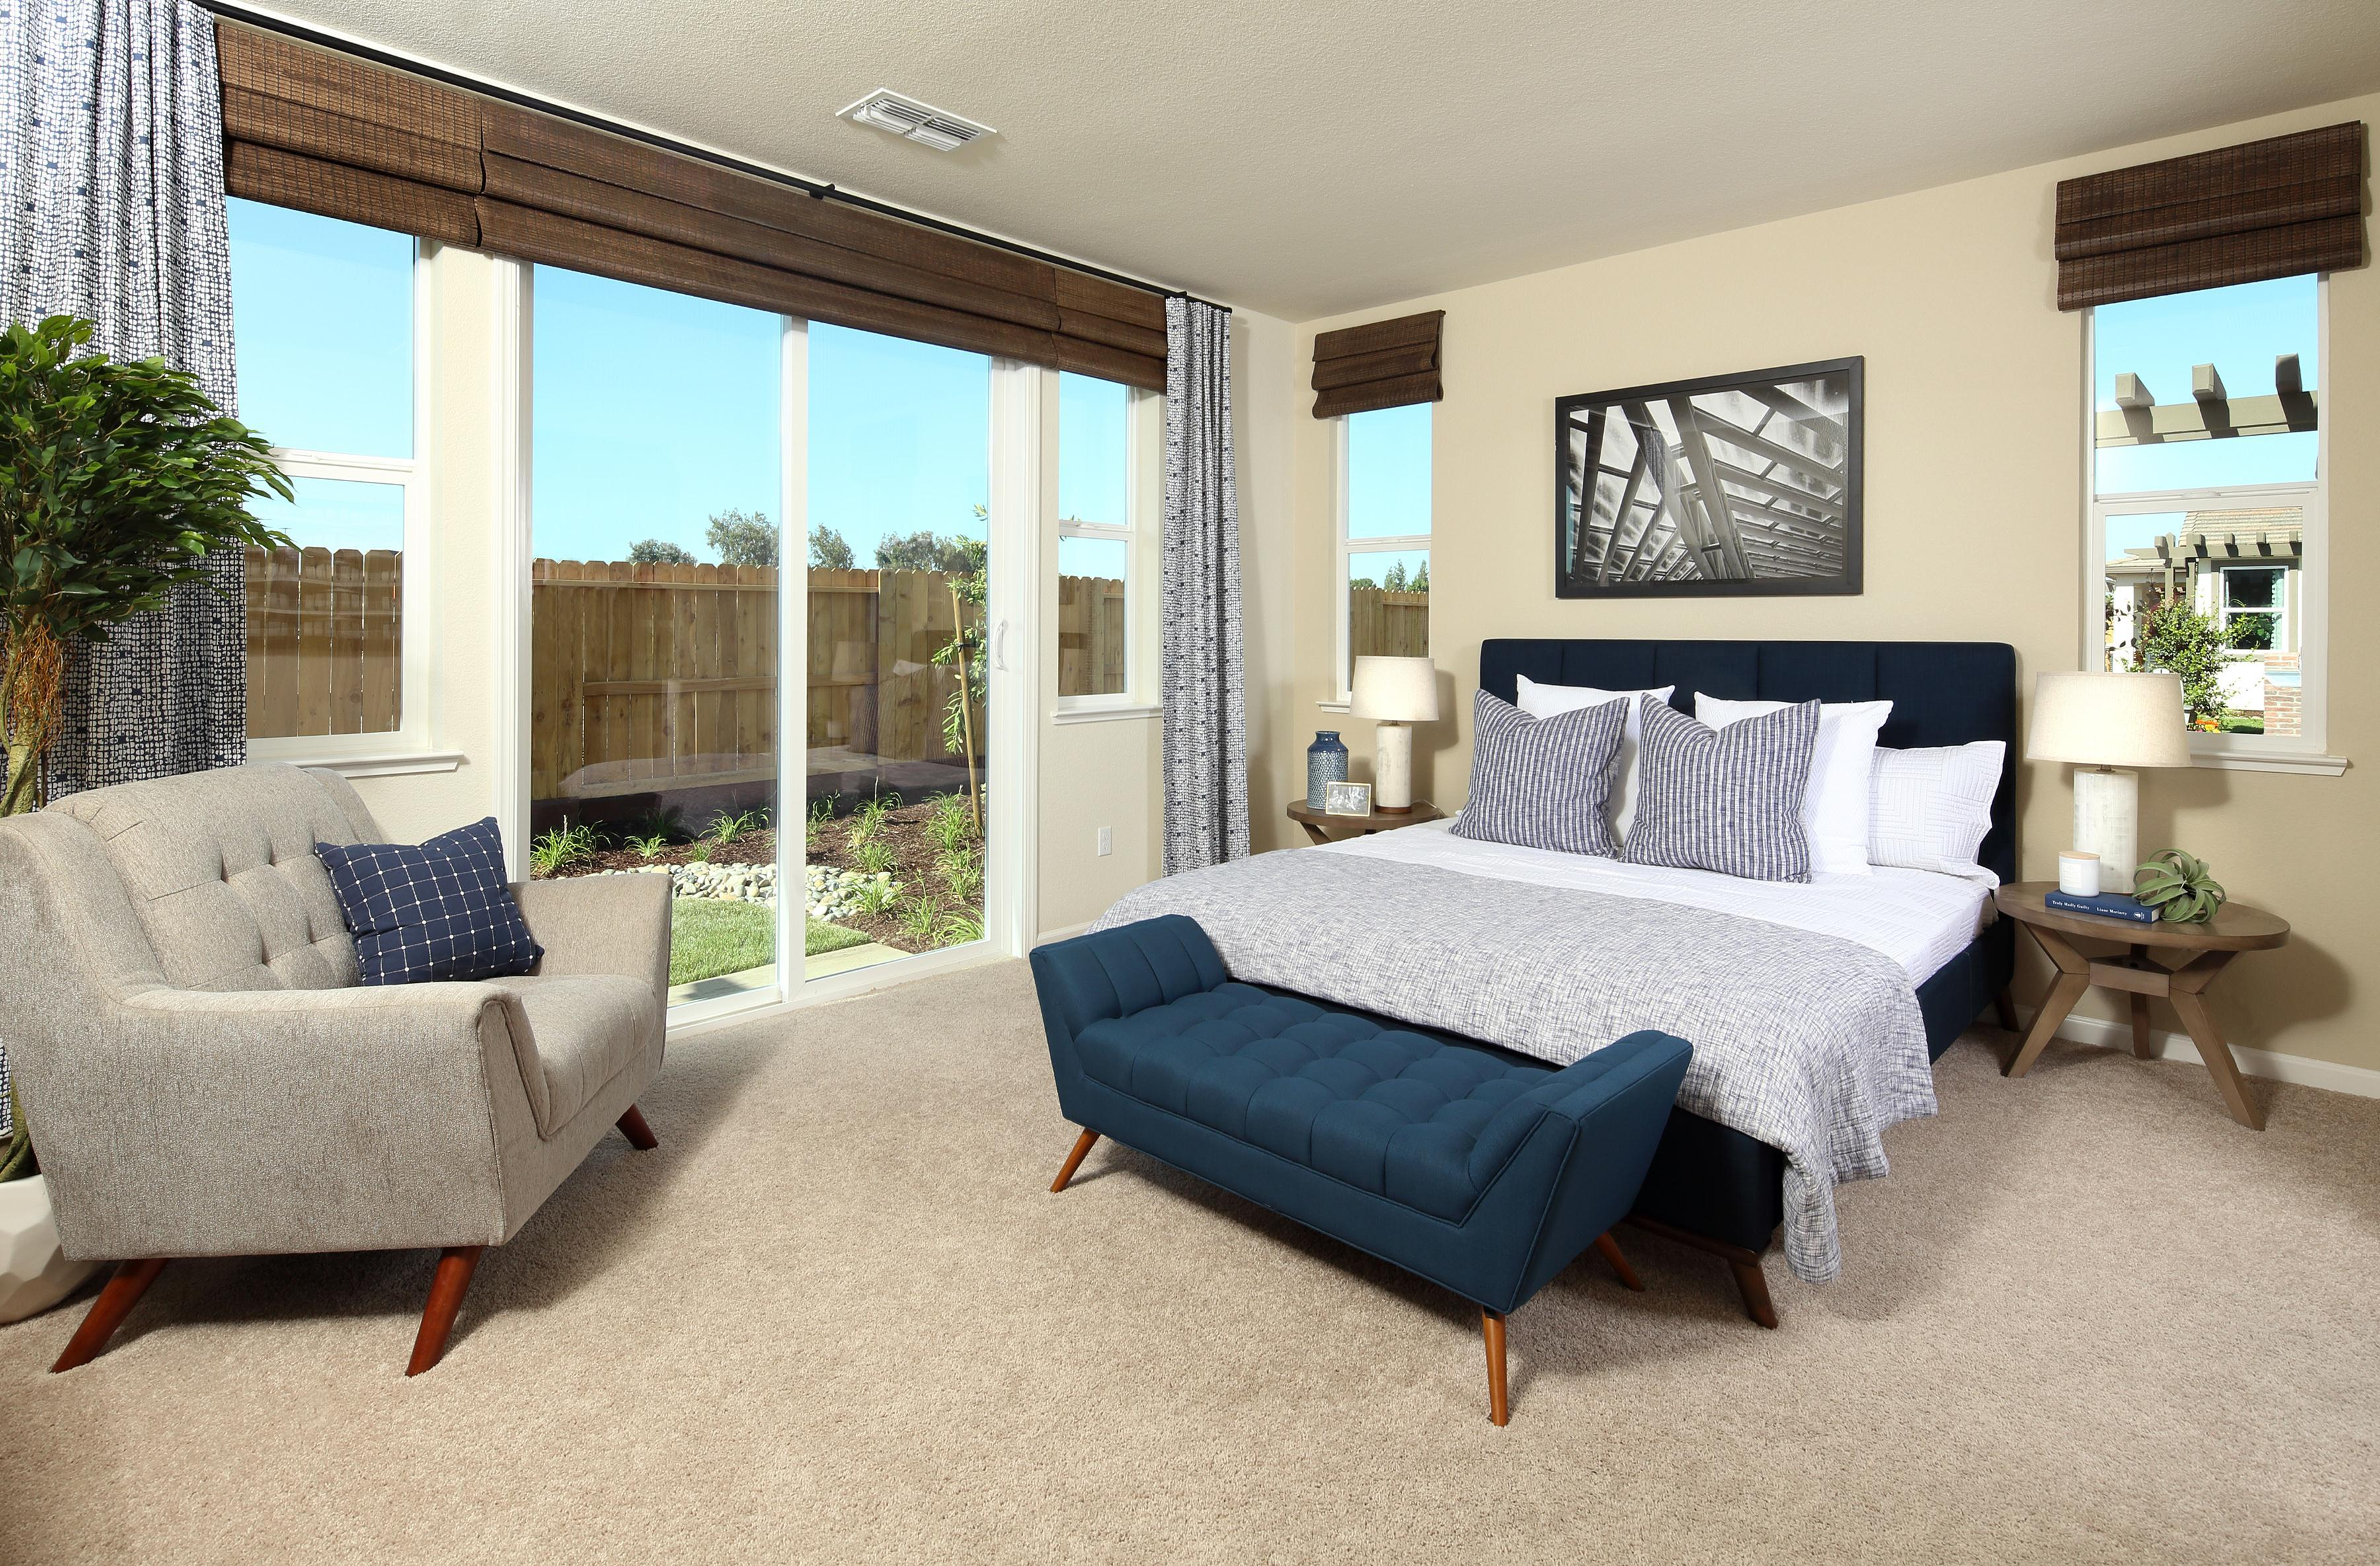 Bedroom featured in THE MASTERPIECE By Florsheim Homes in Modesto, CA